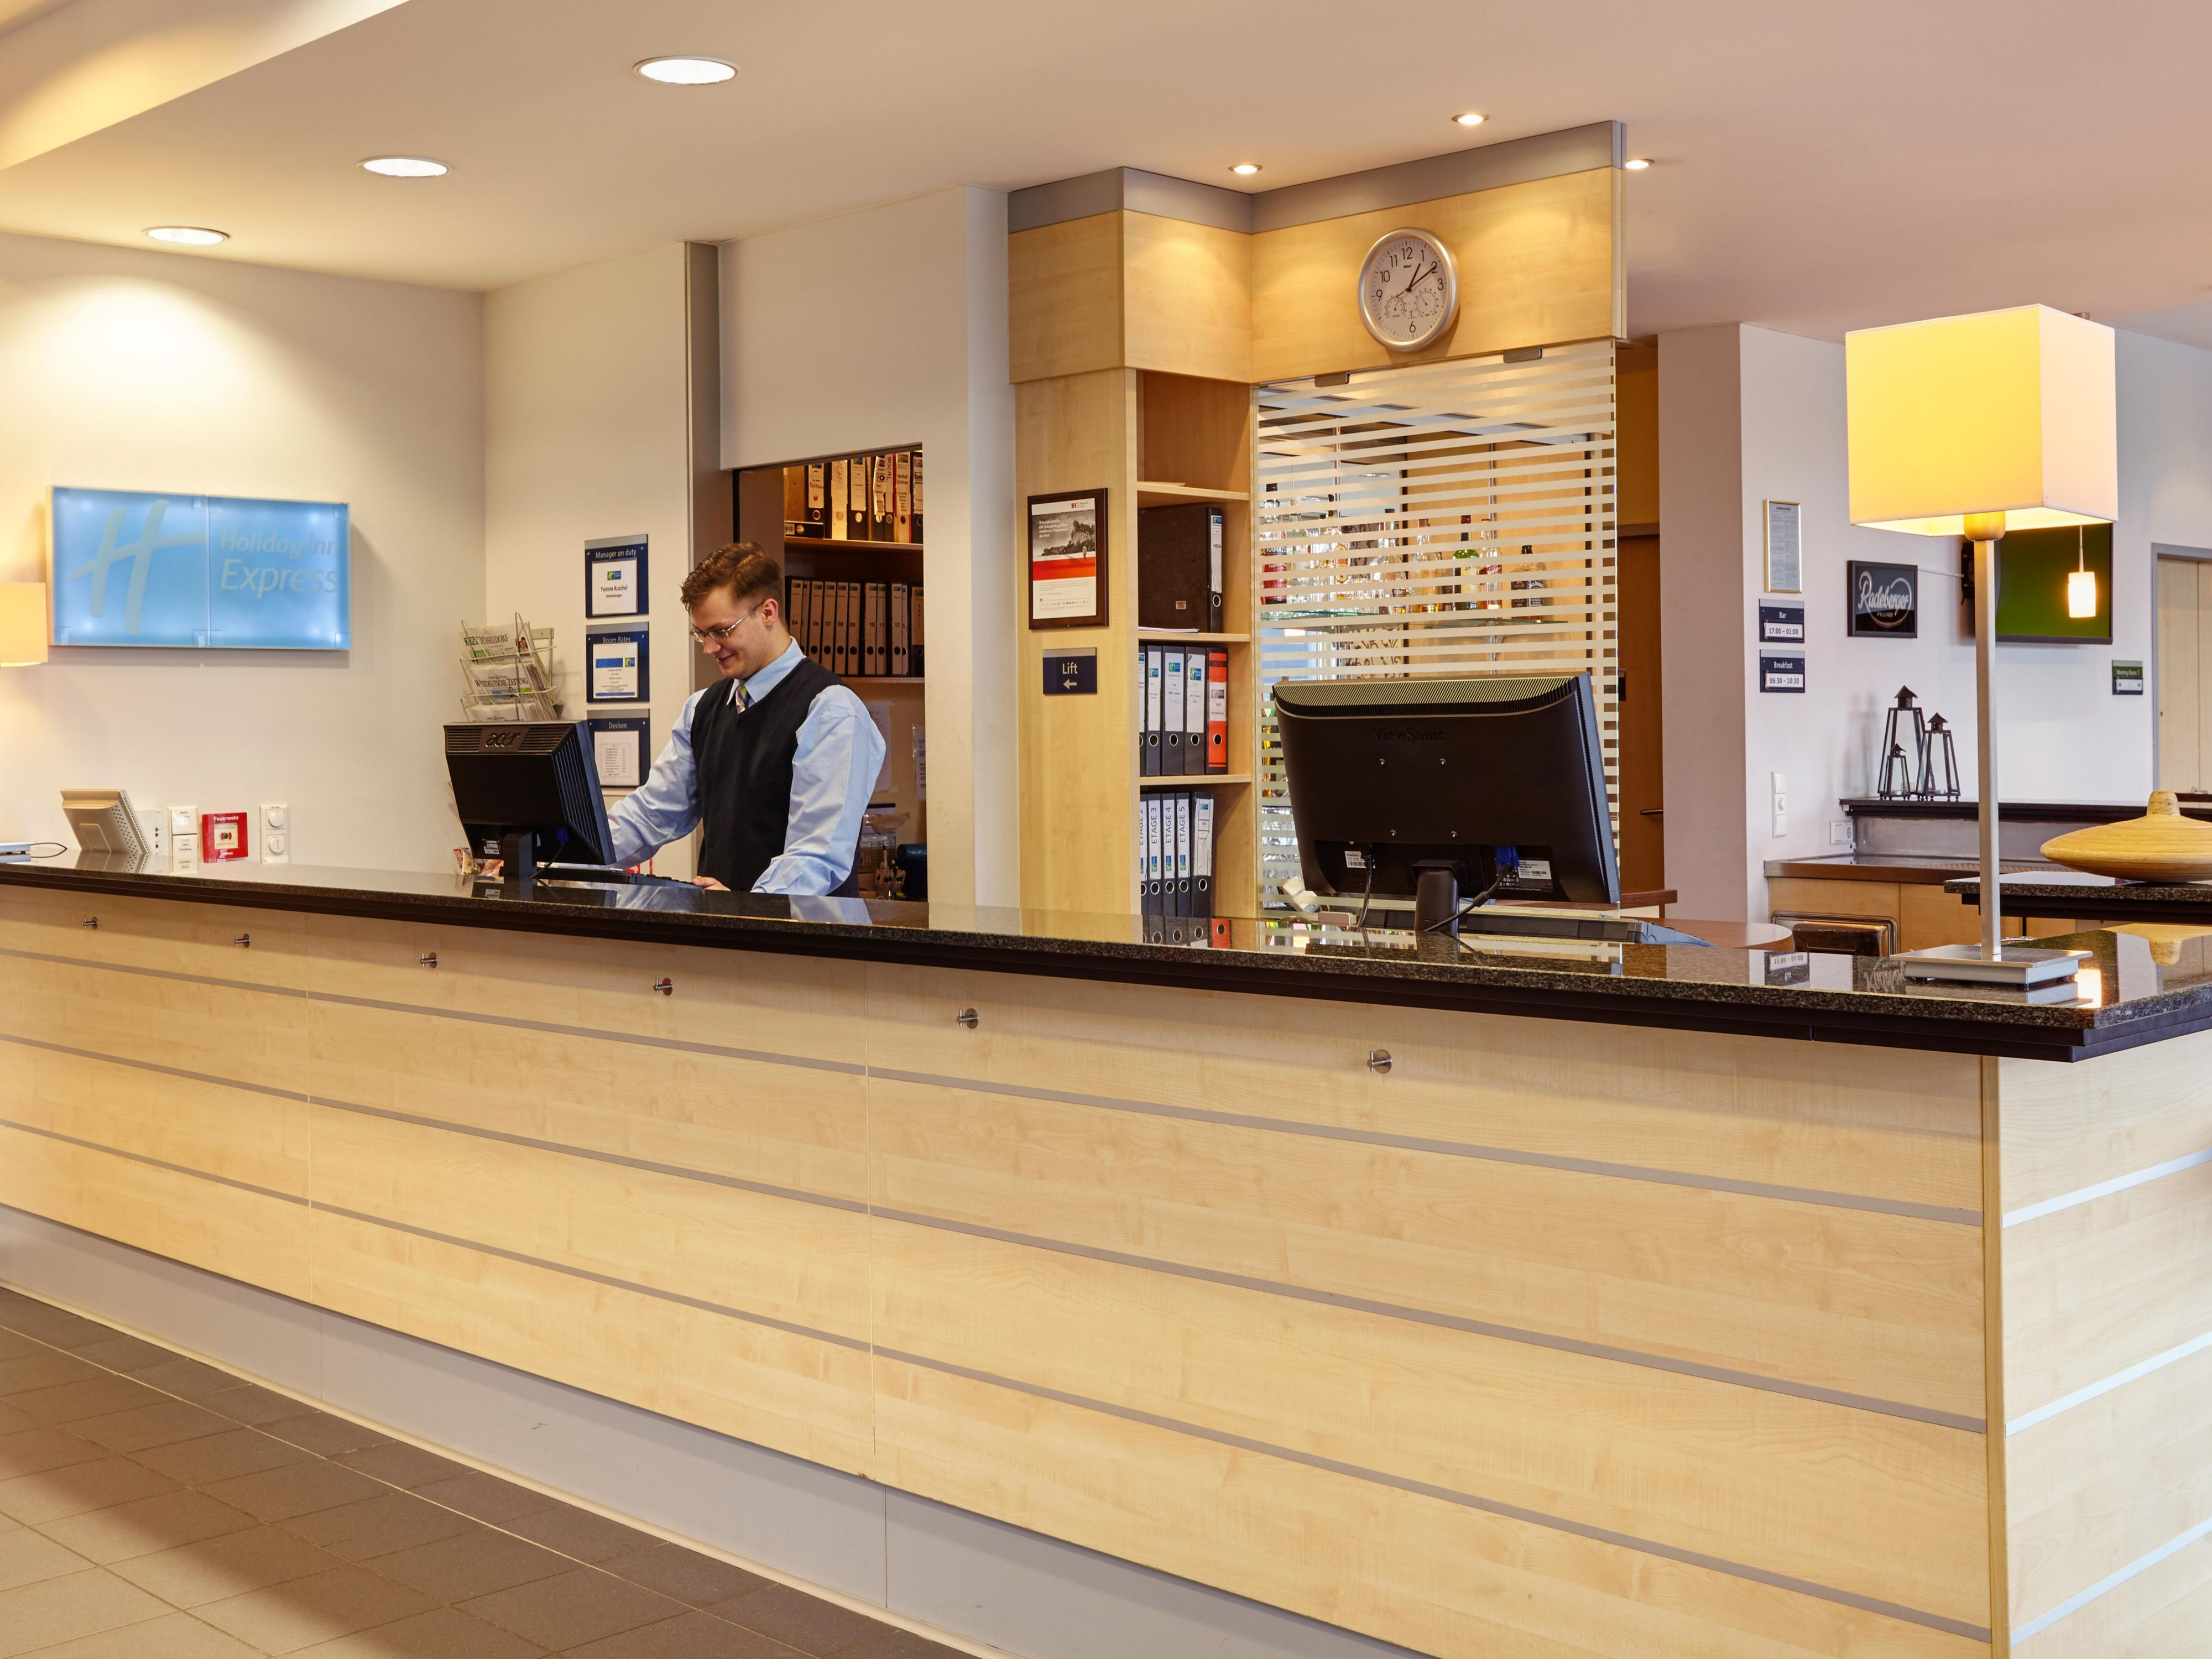 Check in with our friendly Front Desk staff